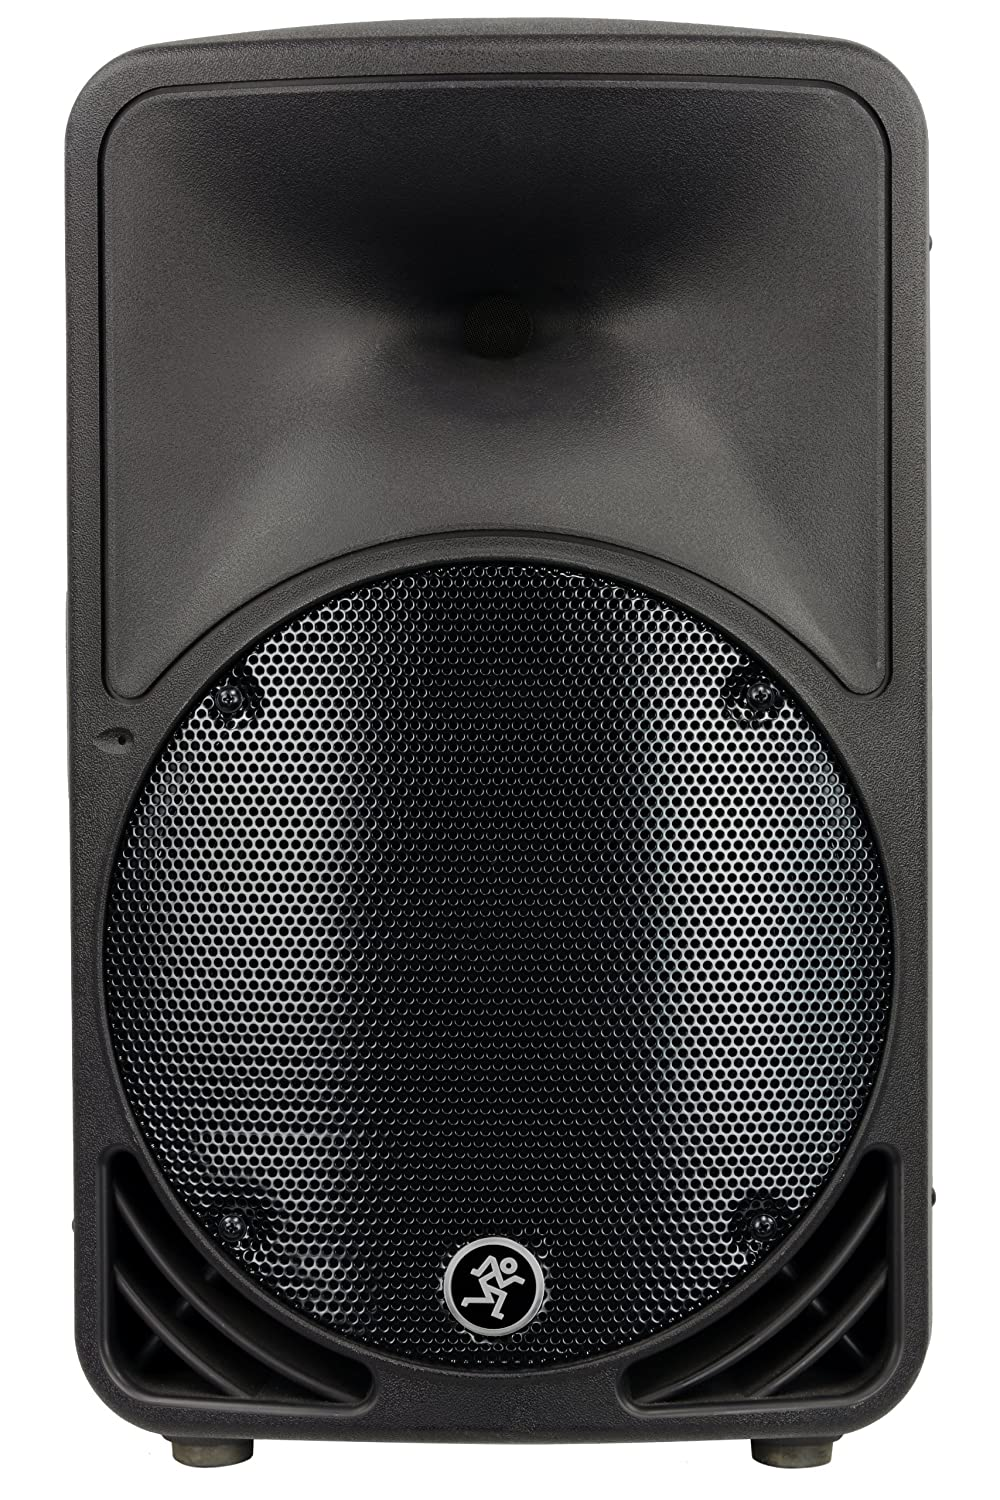 Mackie C200 10-inch 2-Way Compact SR Monitor BLACK (Single Speaker) Loud Technologies Inc.